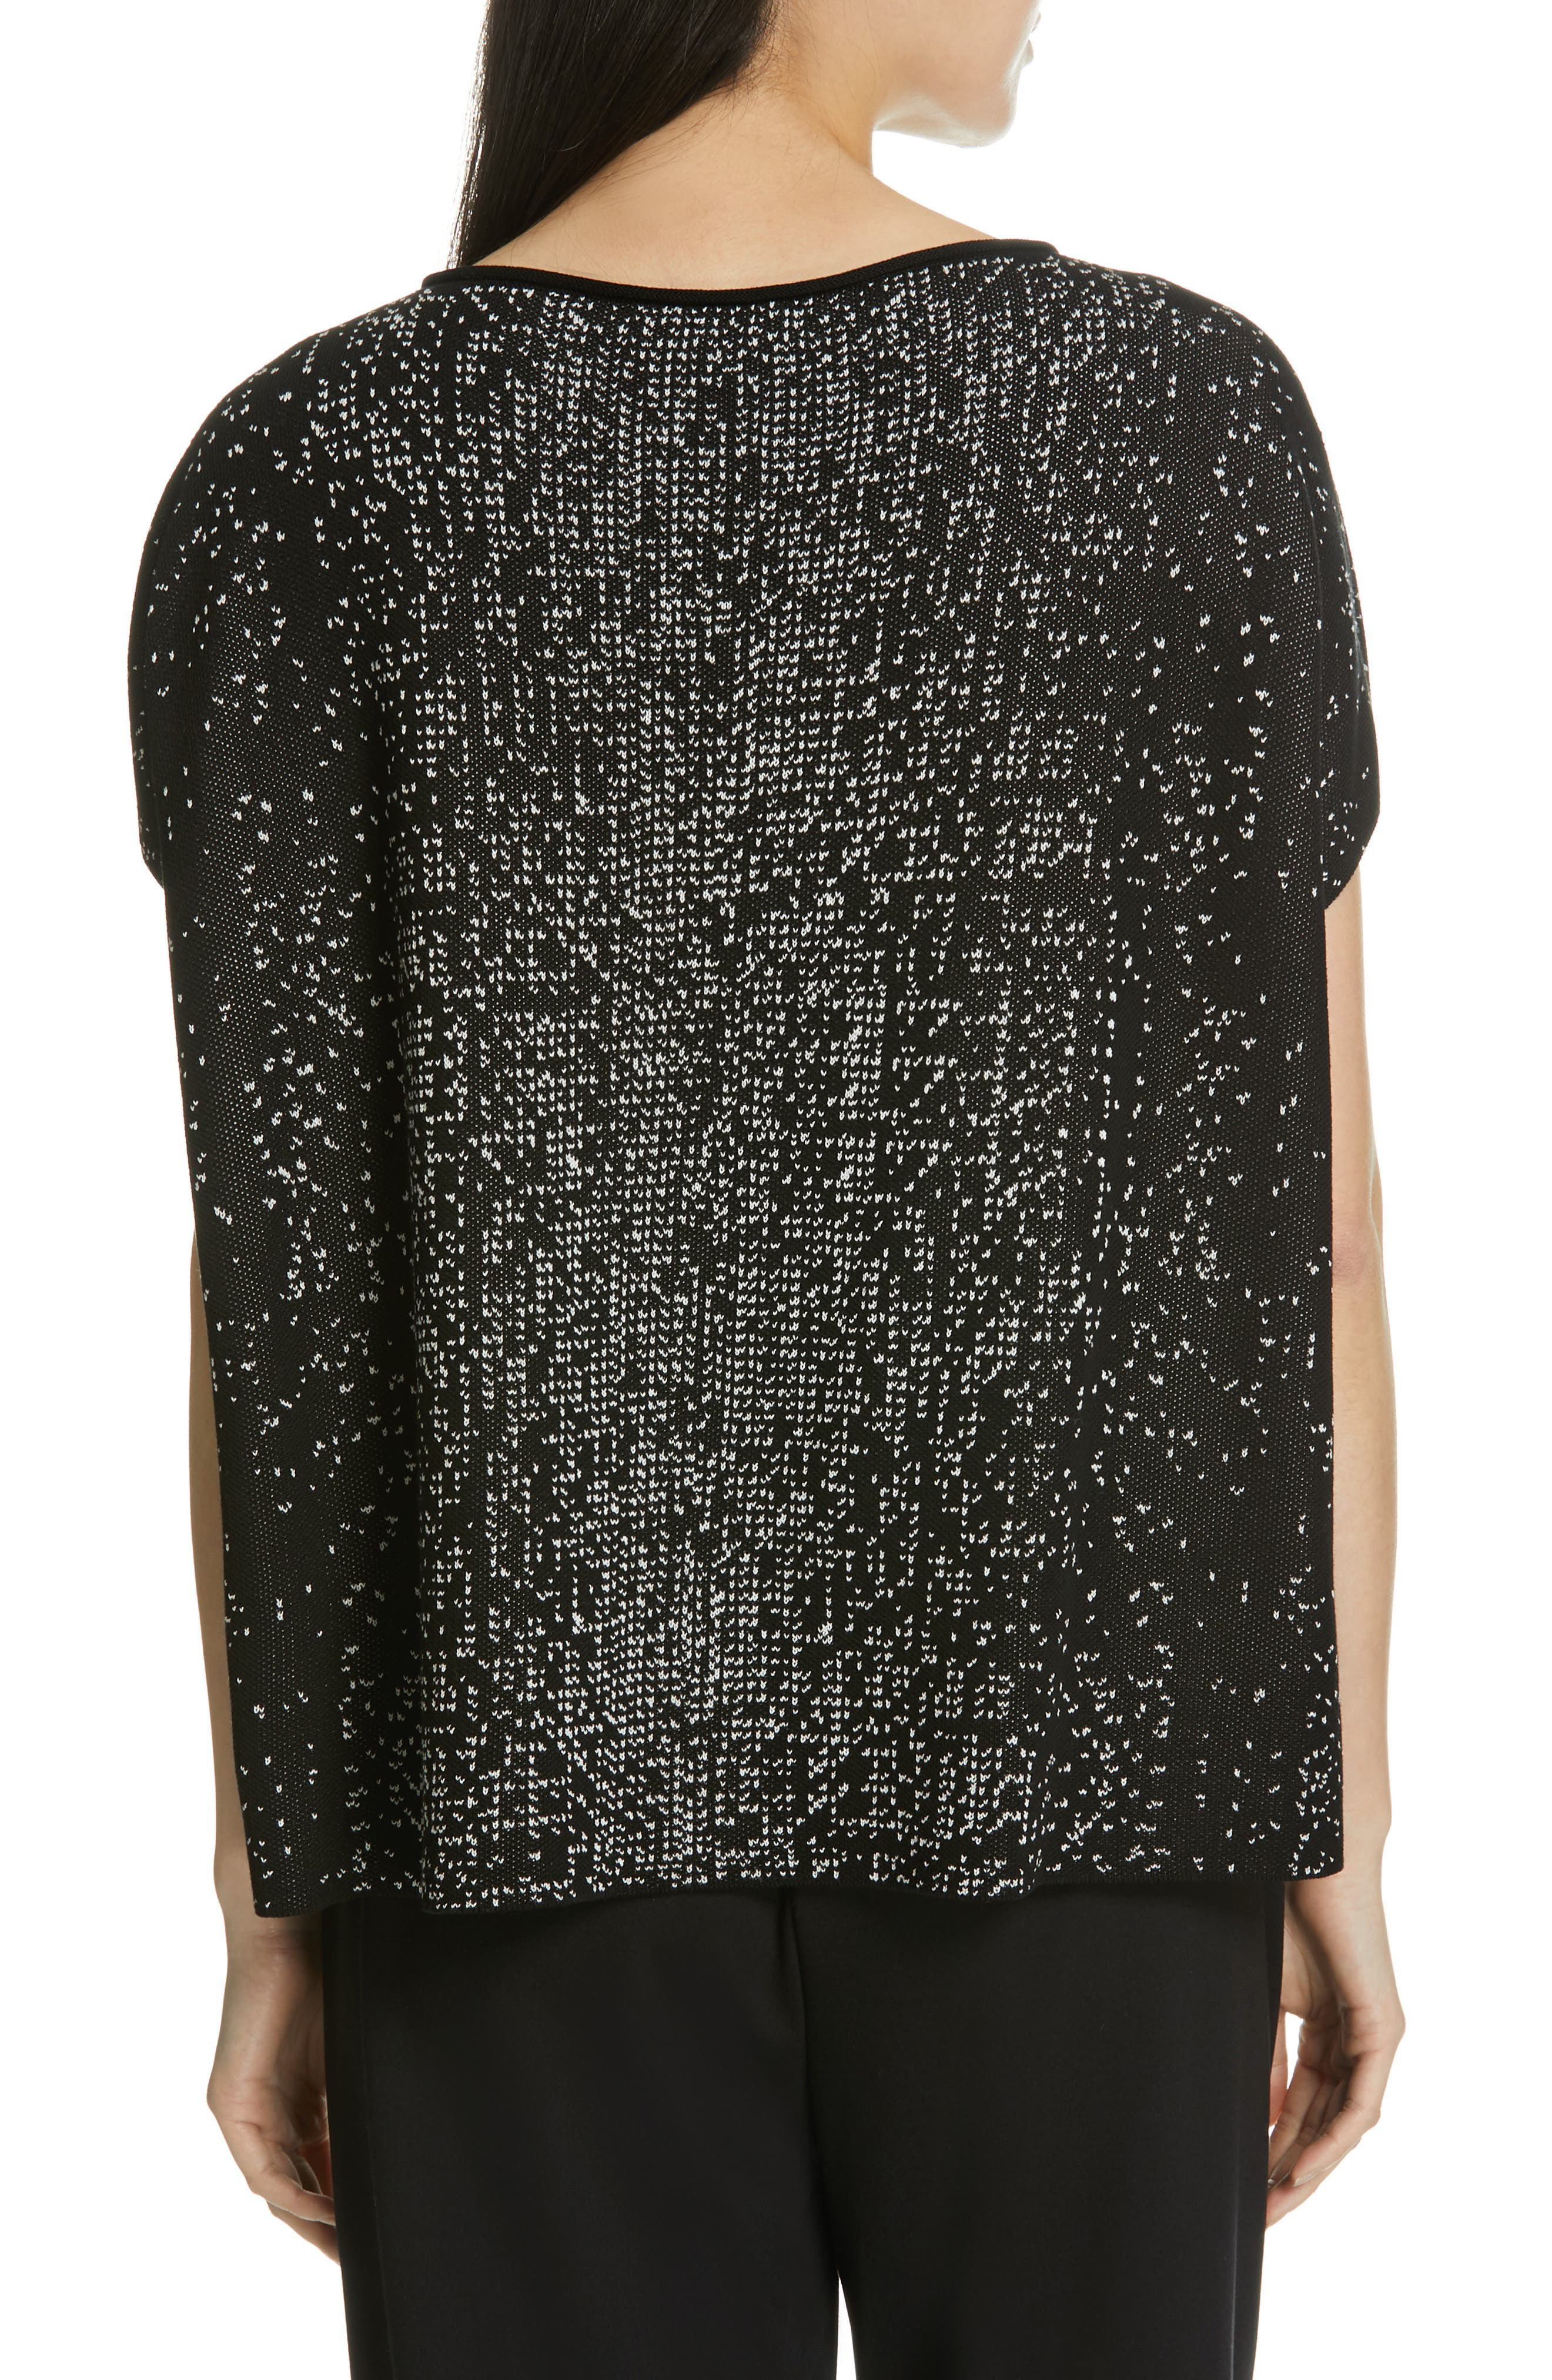 EILEEN FISHER, Bateau Neck Top, Alternate thumbnail 2, color, 012